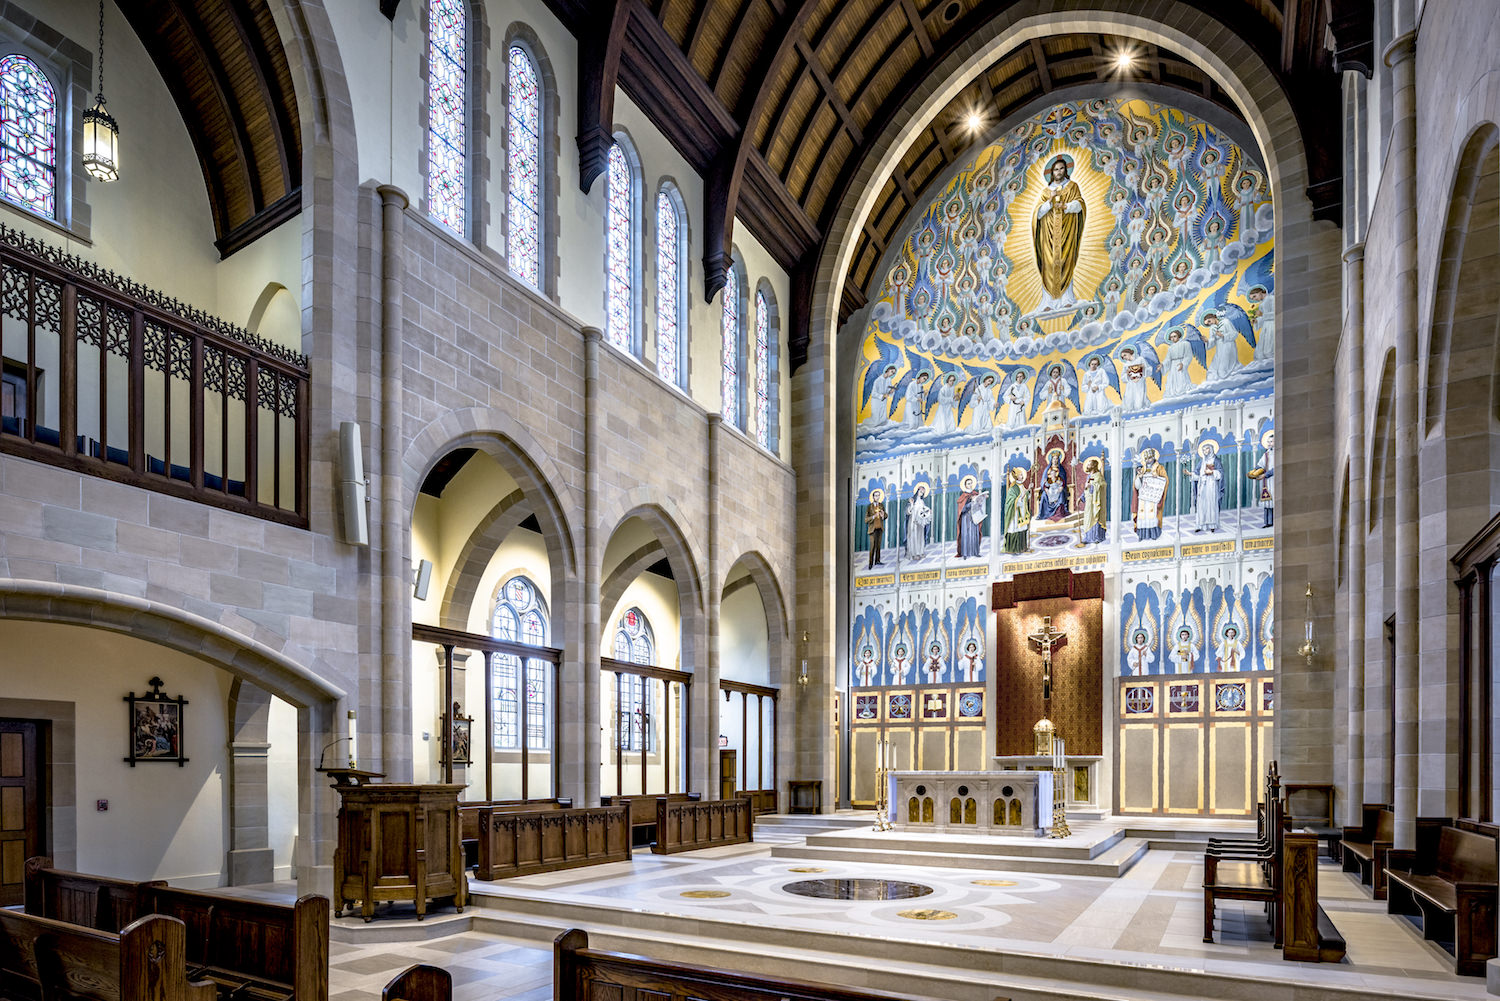 Architecture Interior, Place of Worship, Church, Chapel, Sanctuary, Mural, Altar